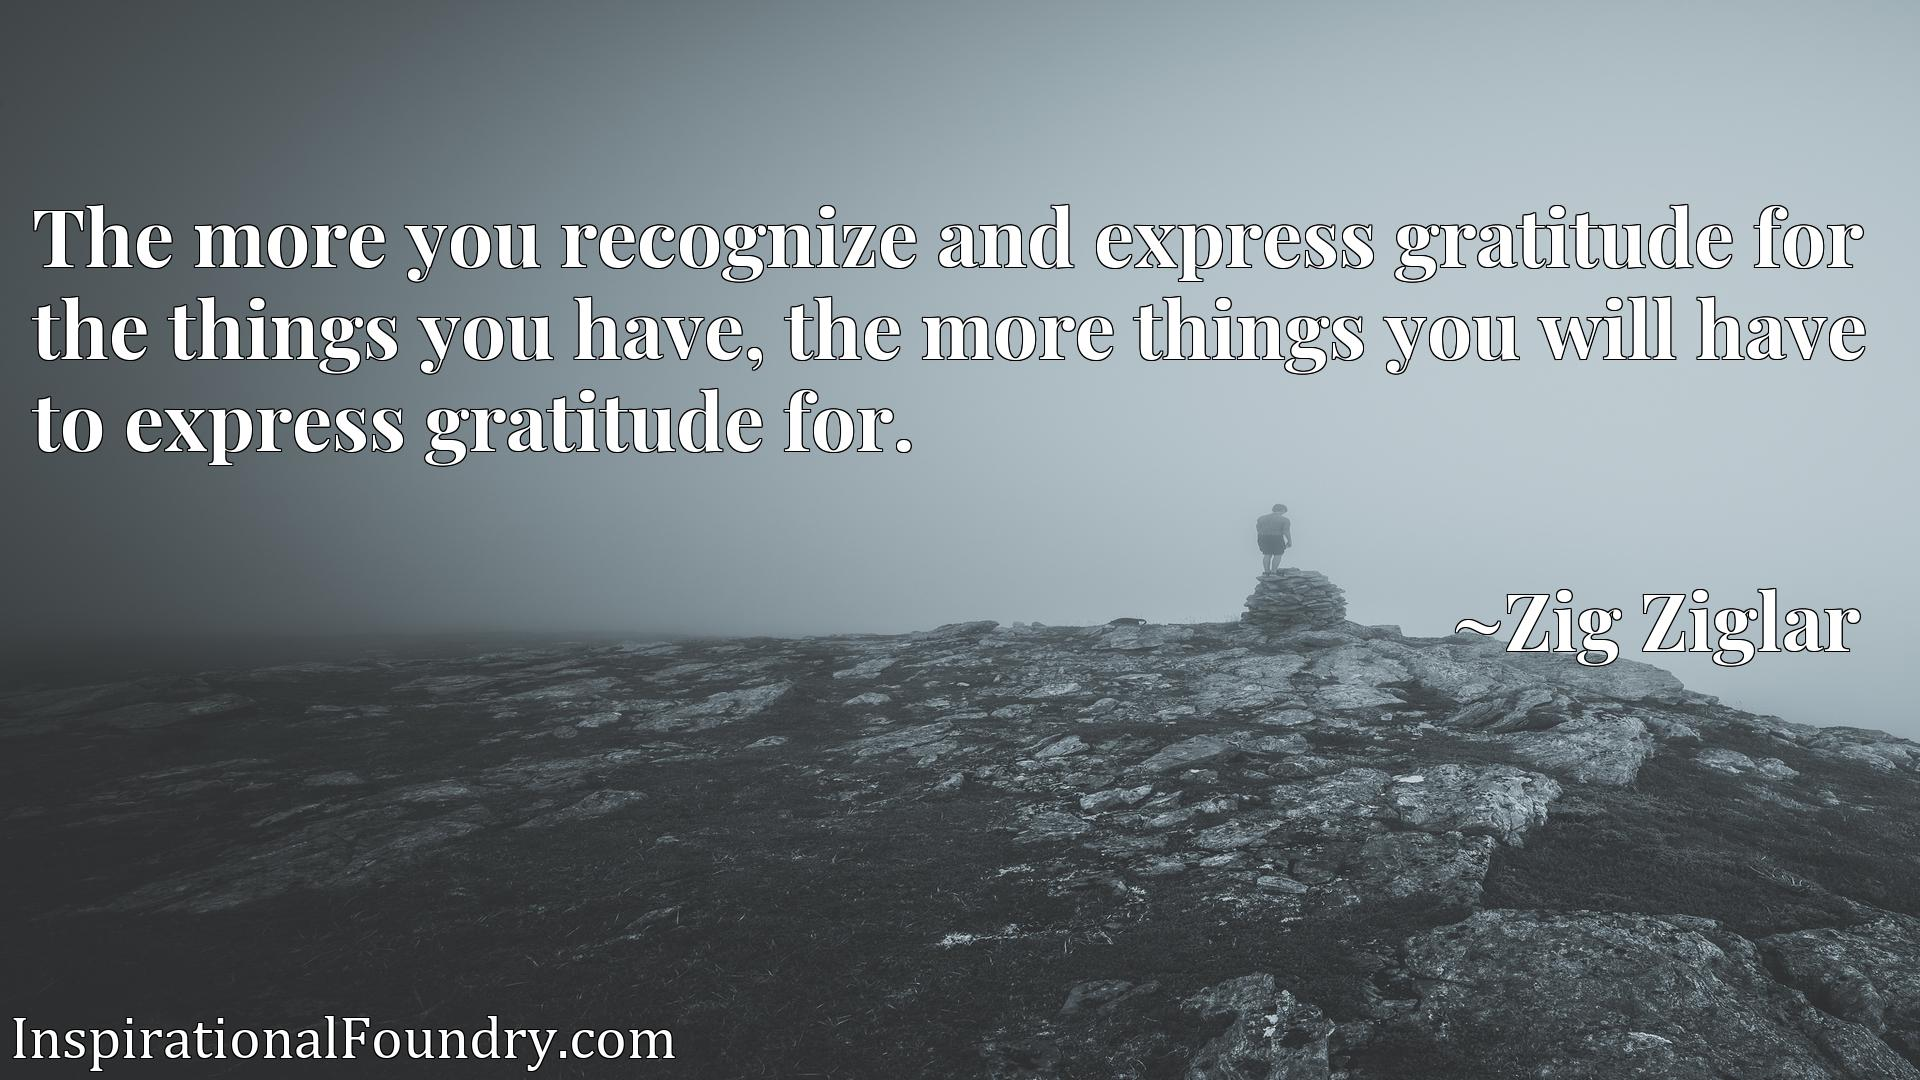 The more you recognize and express gratitude for the things you have, the more things you will have to express gratitude for.